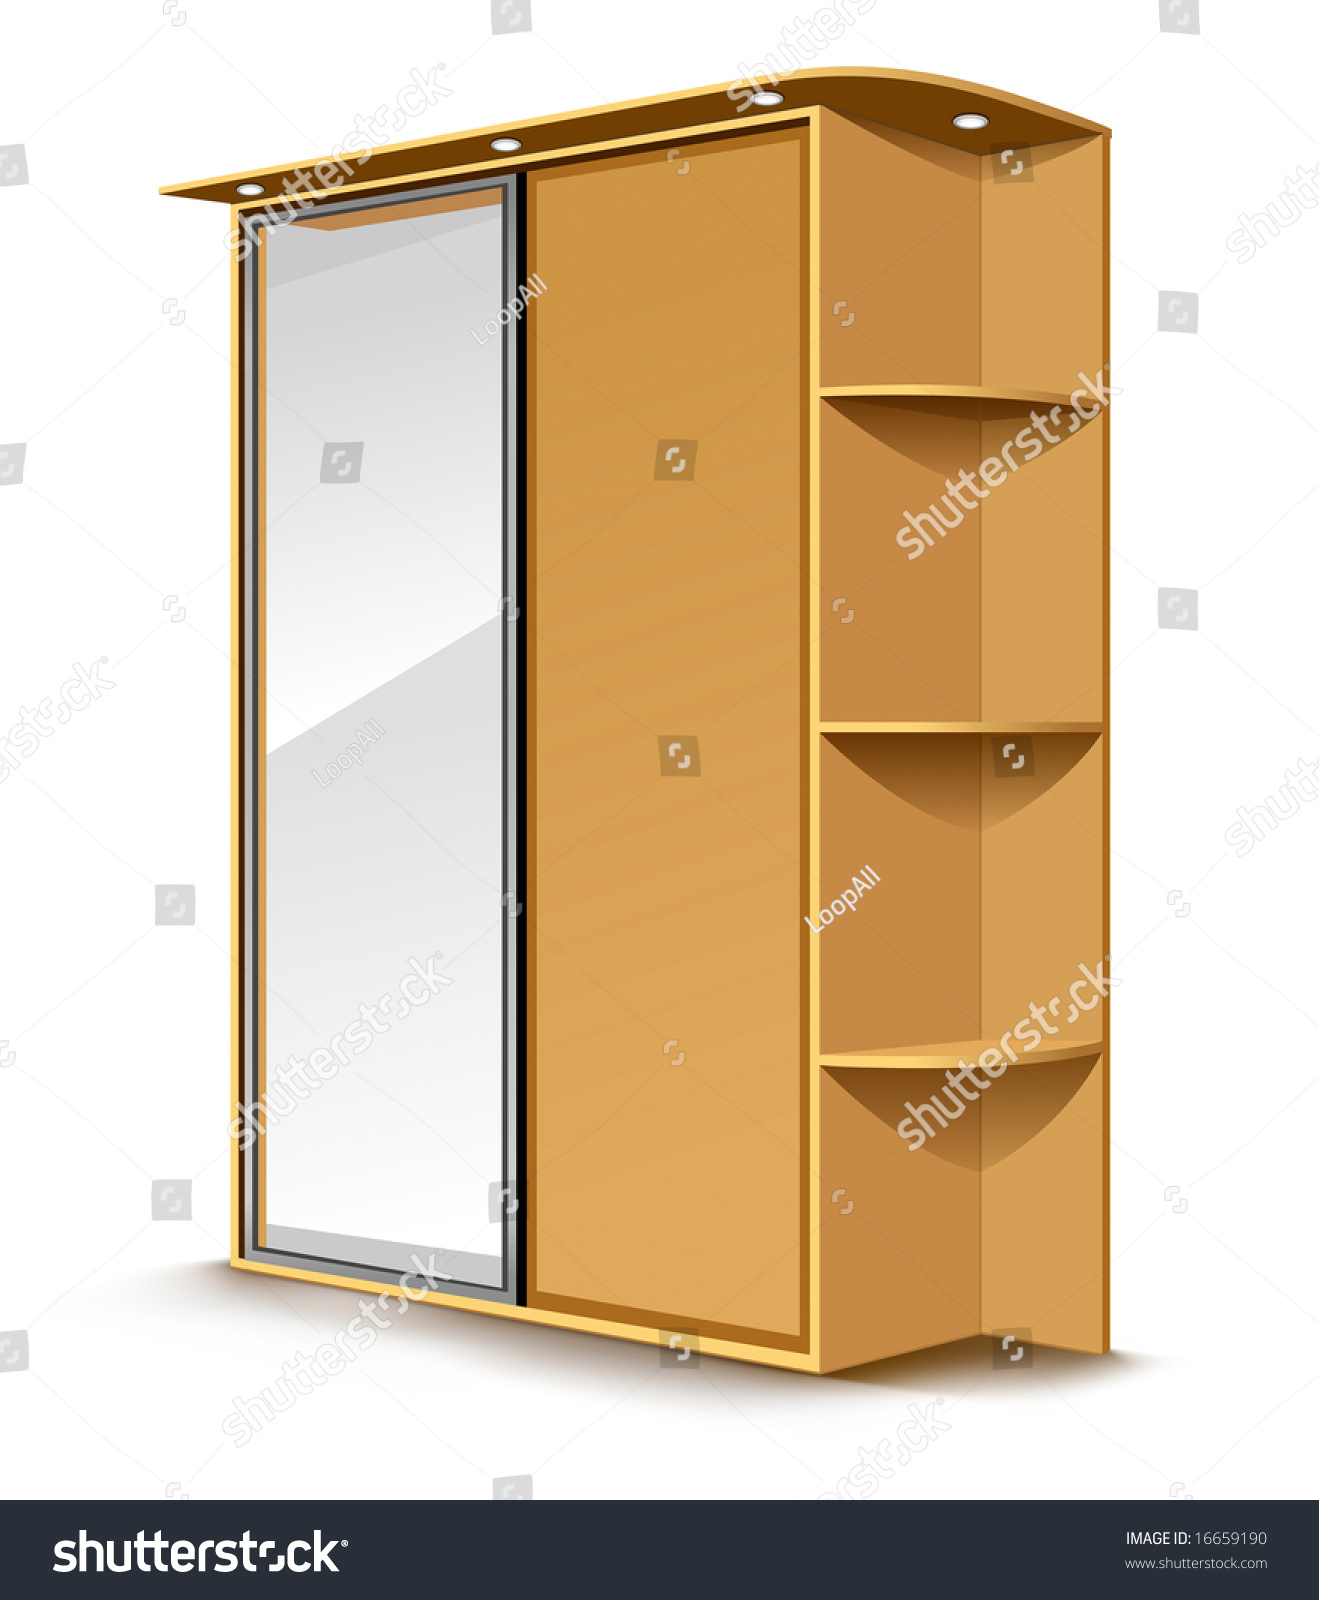 Amazing photo of vector wooden wardrobe with mirror and shelfs isolated on white  with #70410C color and 1319x1600 pixels